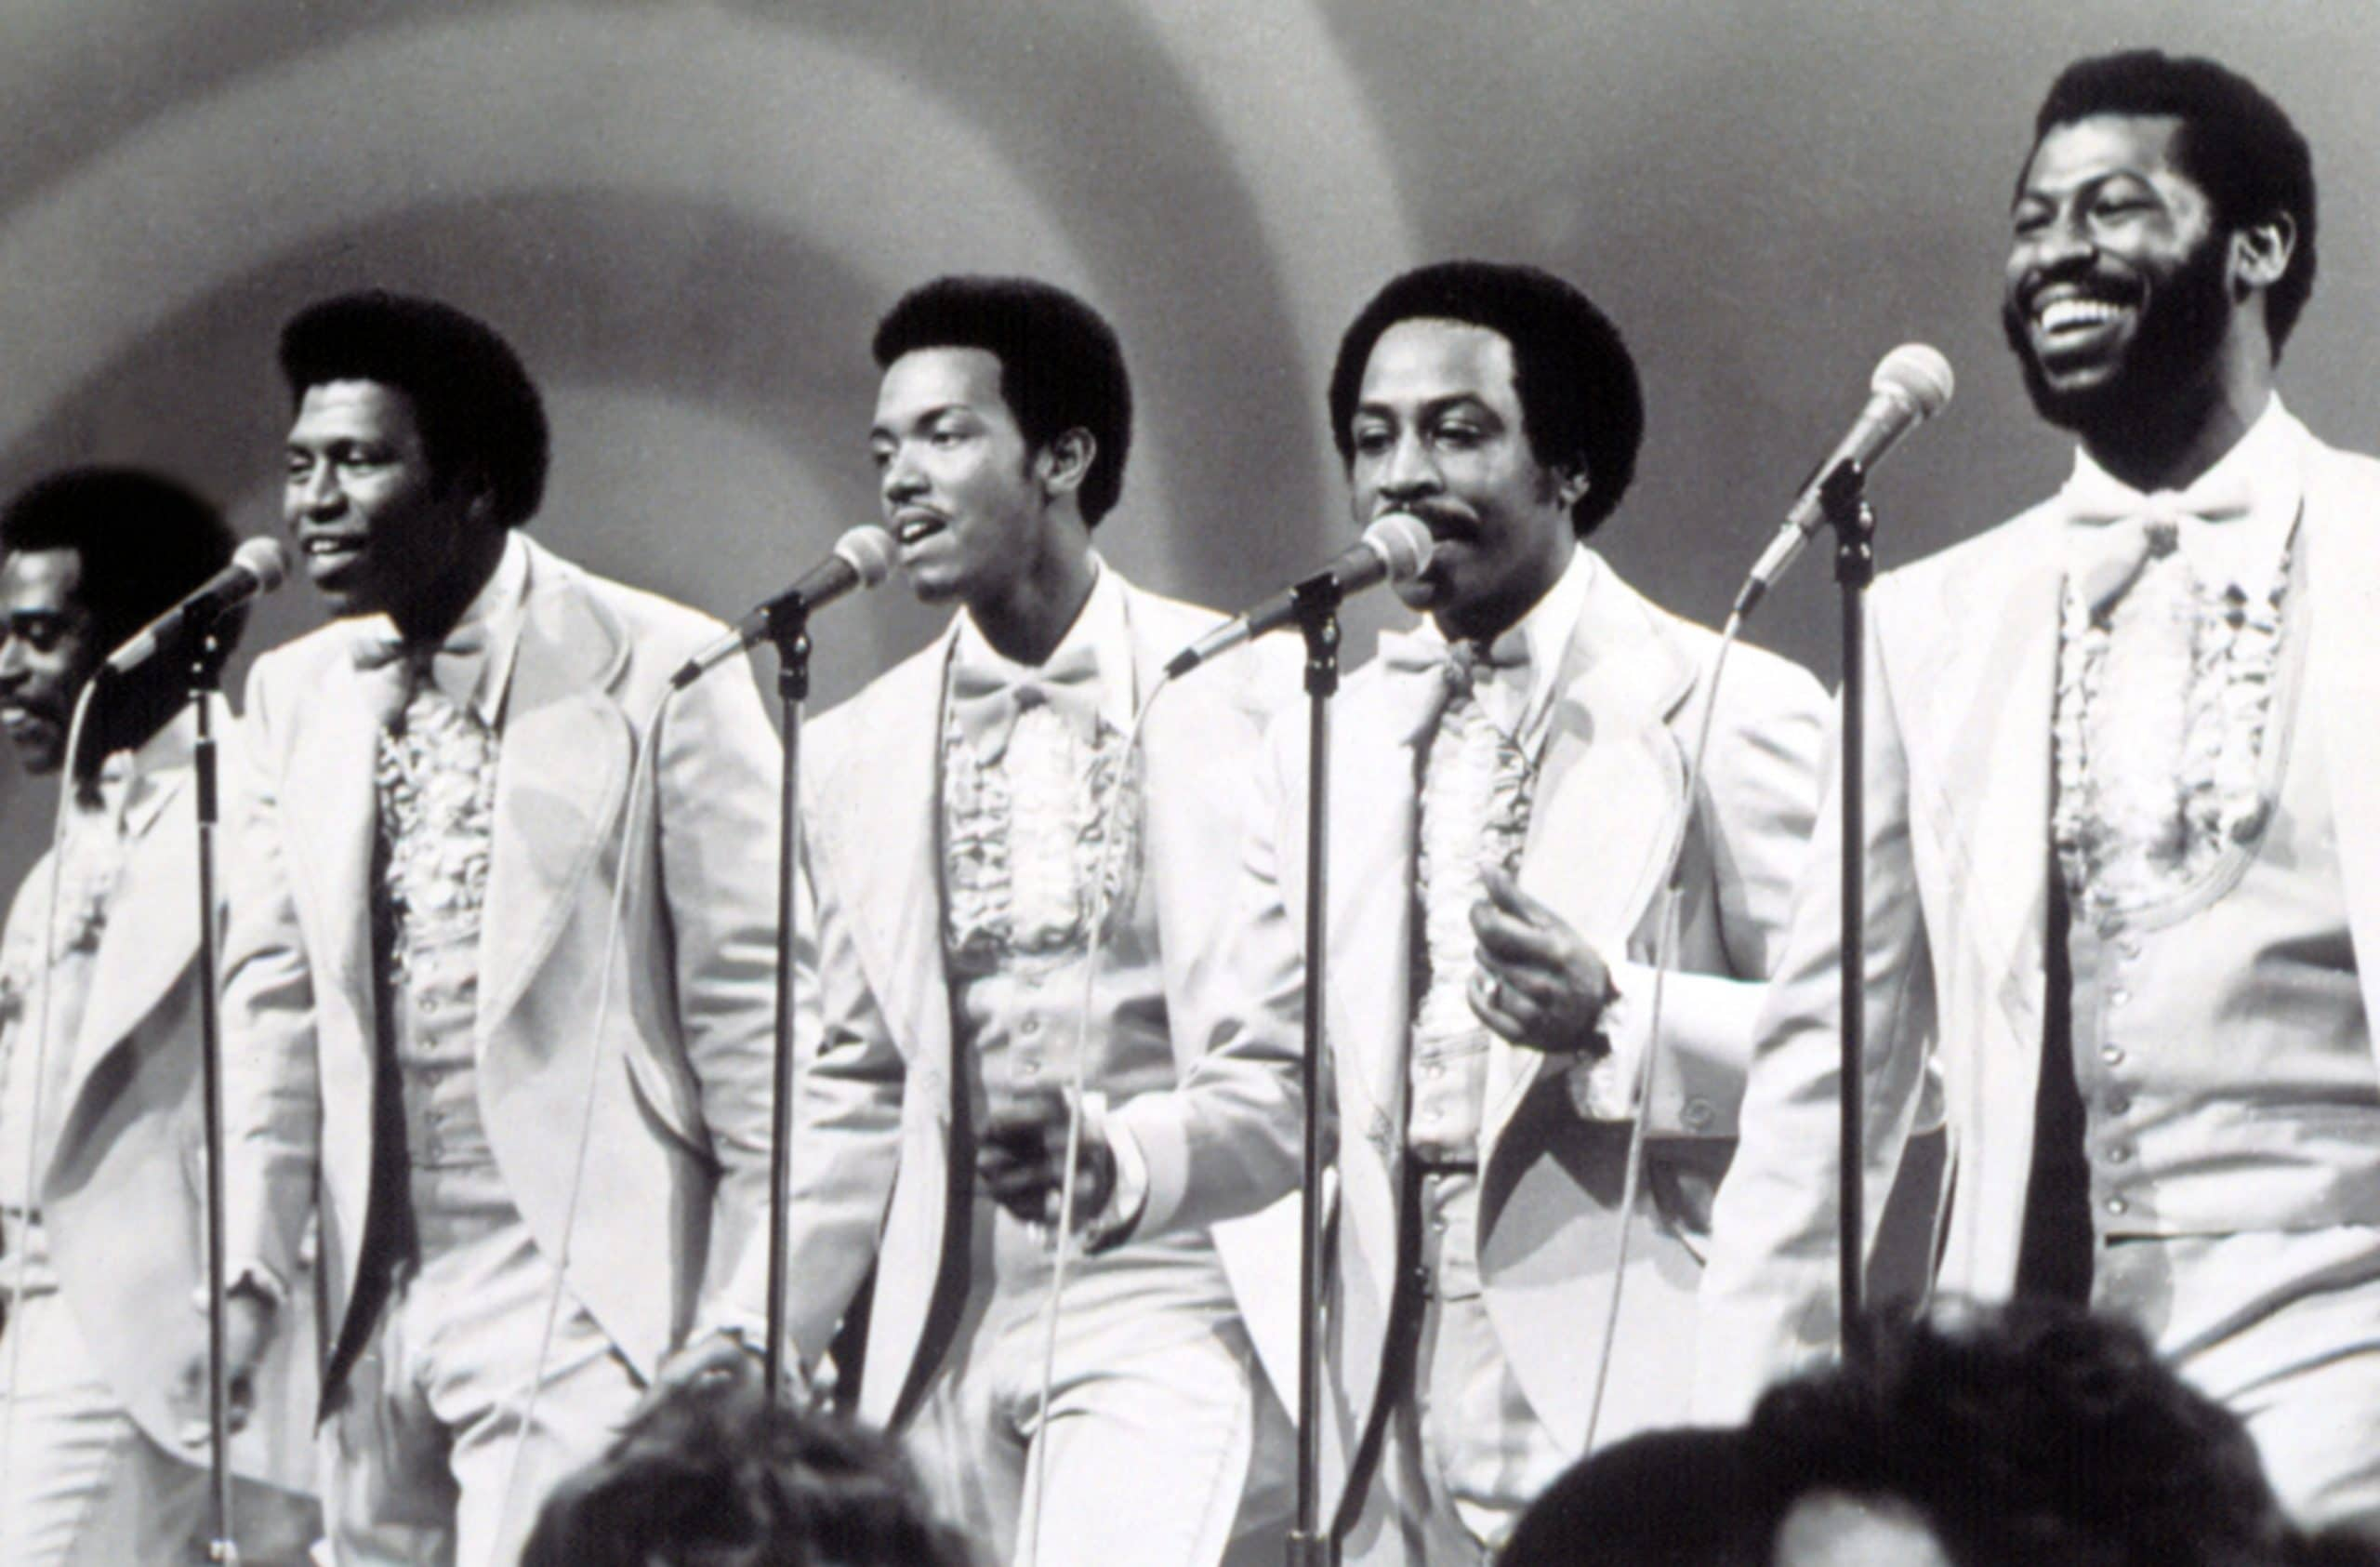 Harold Melvin and the Blue Notes, ca. 1975